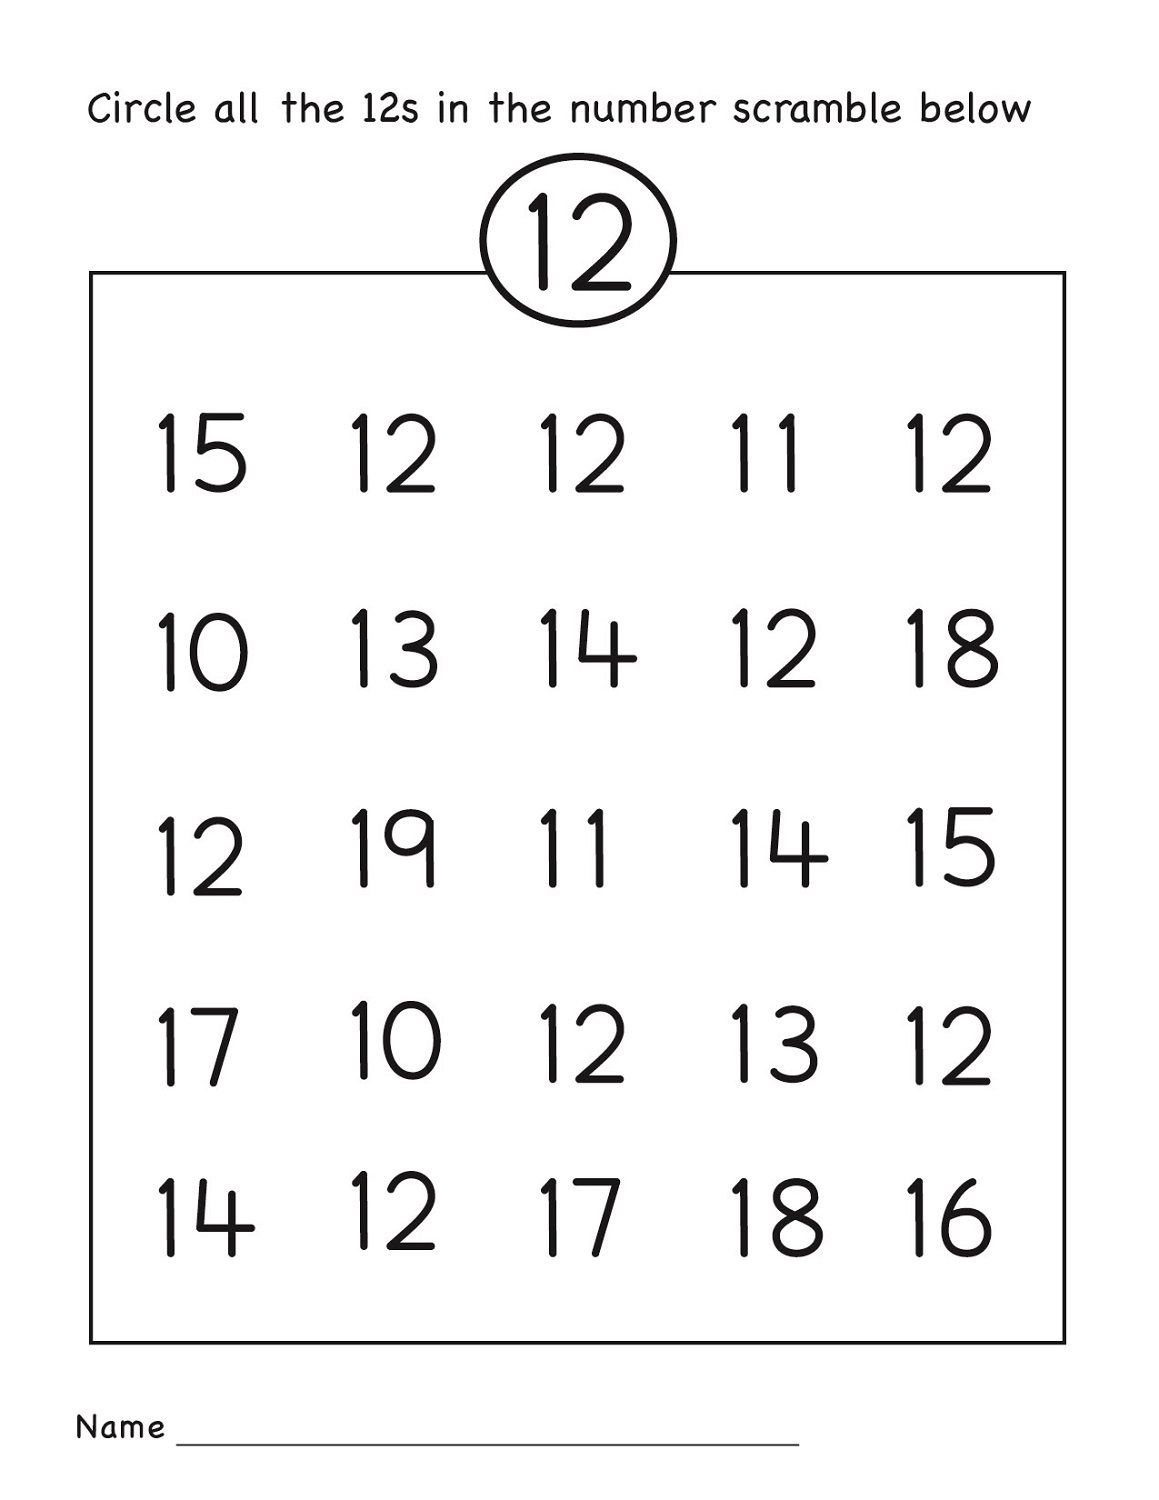 Number 12 Worksheets Easy | Numbers 11-20 | Preschool Worksheets - Free Printable Number Worksheets